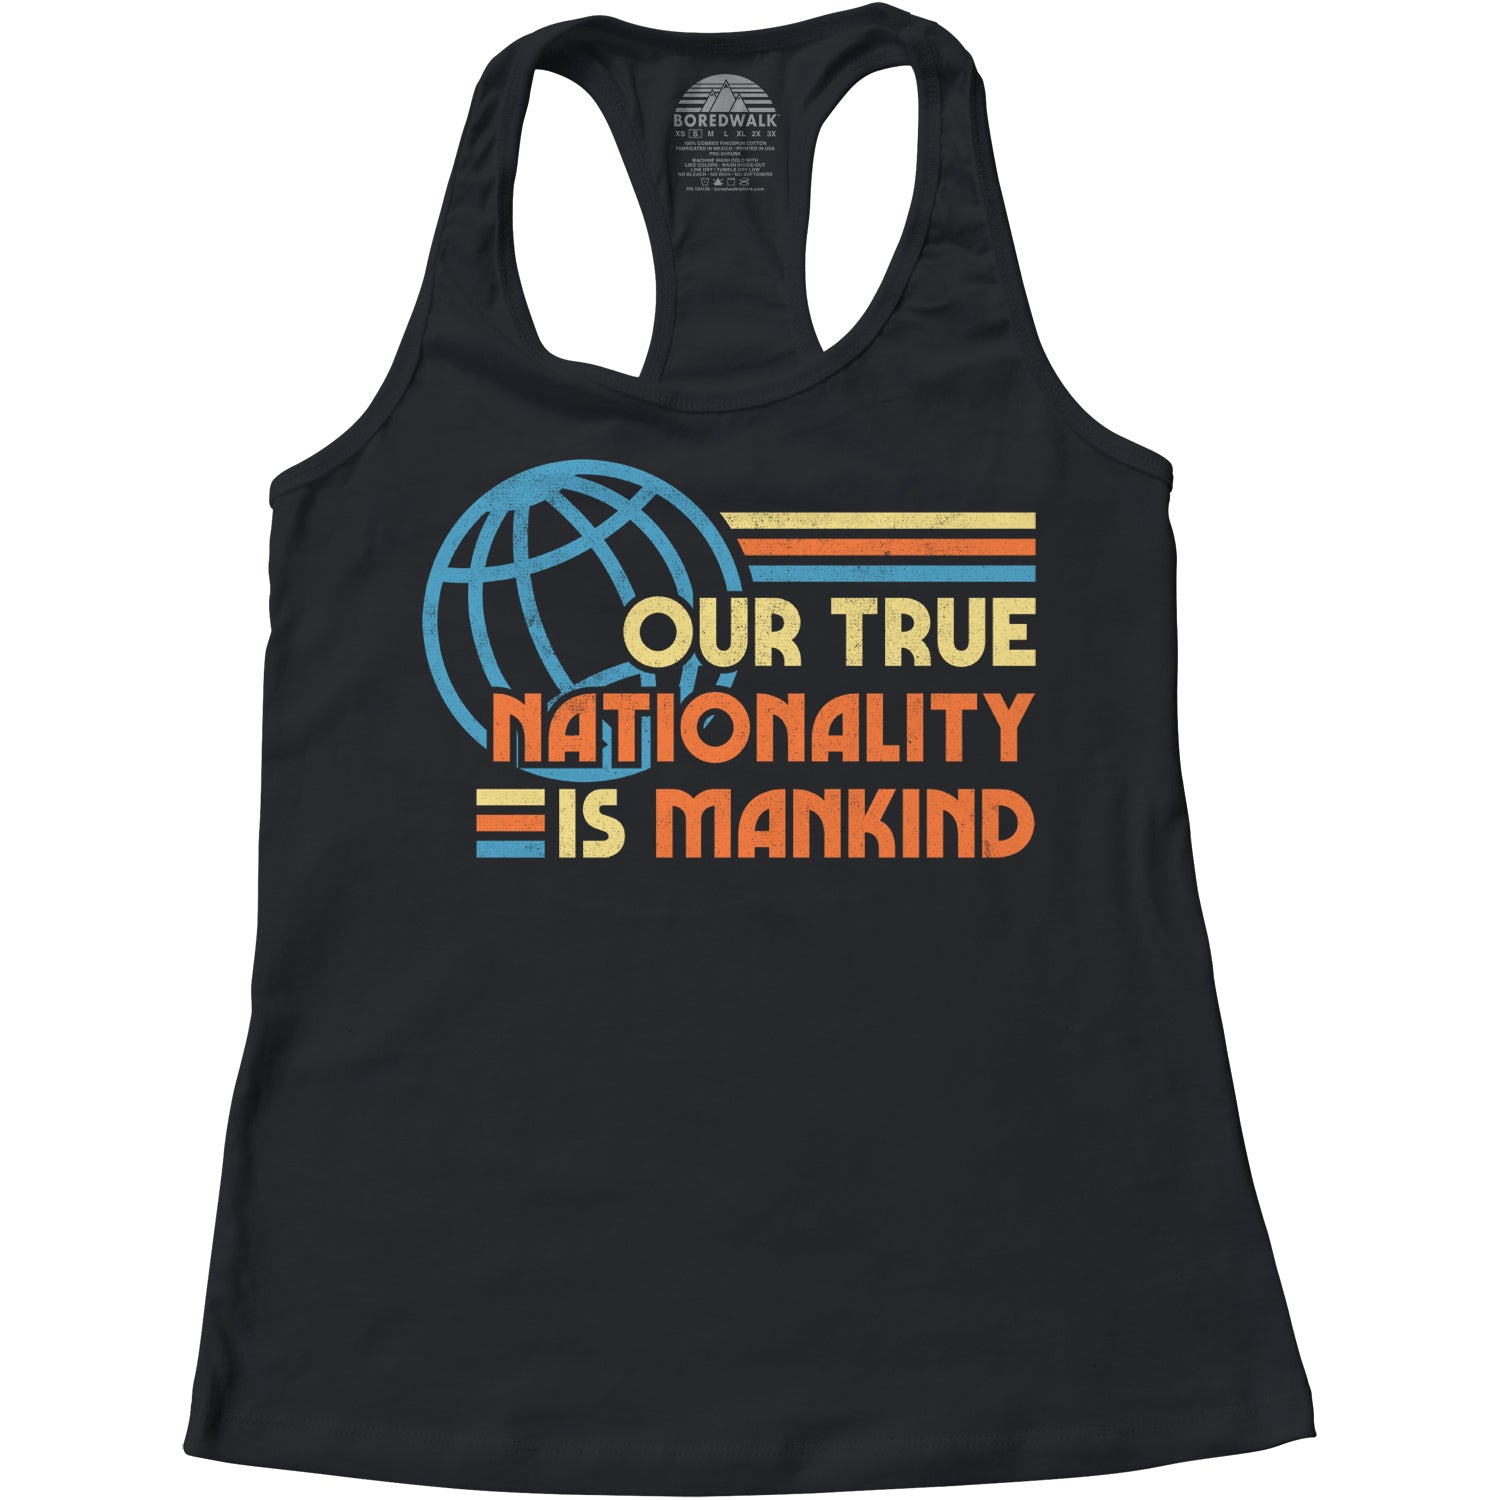 Women's Our True Nationality is Mankind Racerback Tank Top